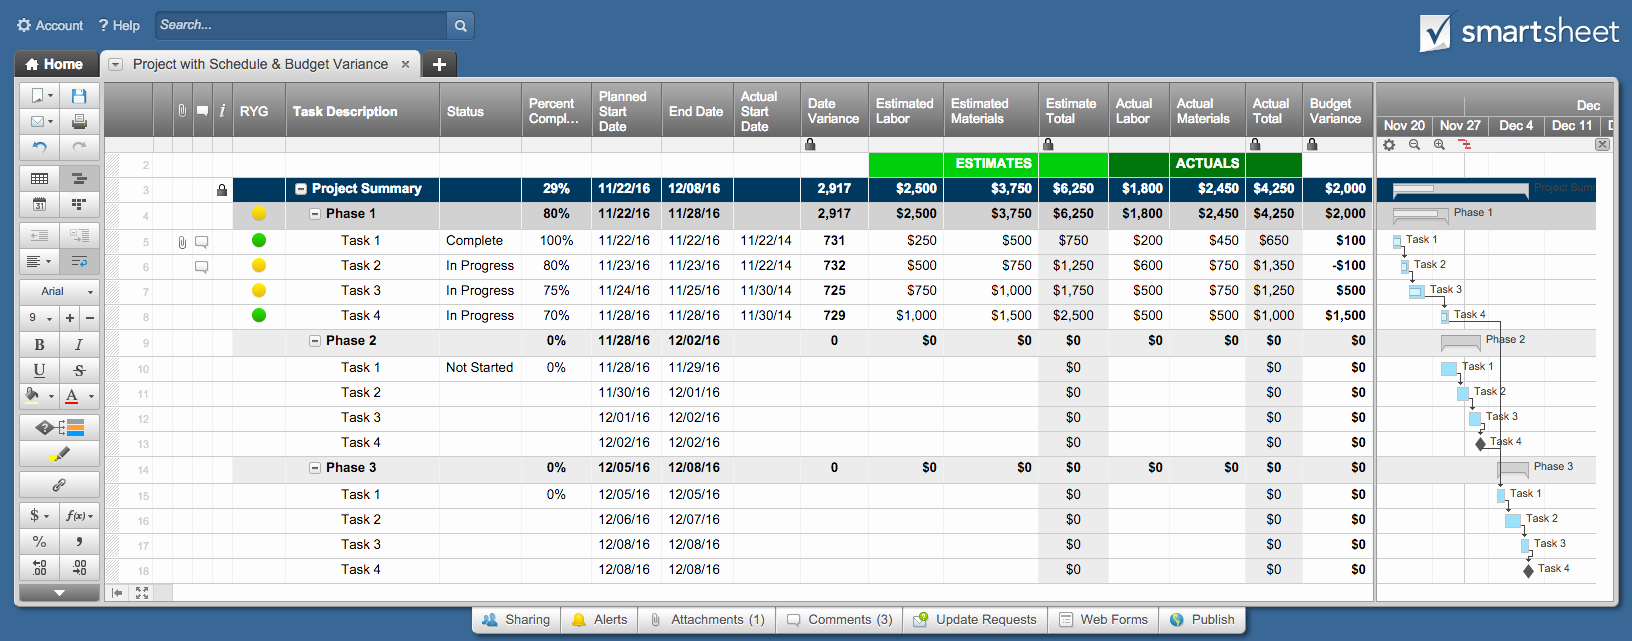 Project Management Spreadsheet Template Free Unique Free Excel Project Management Templates